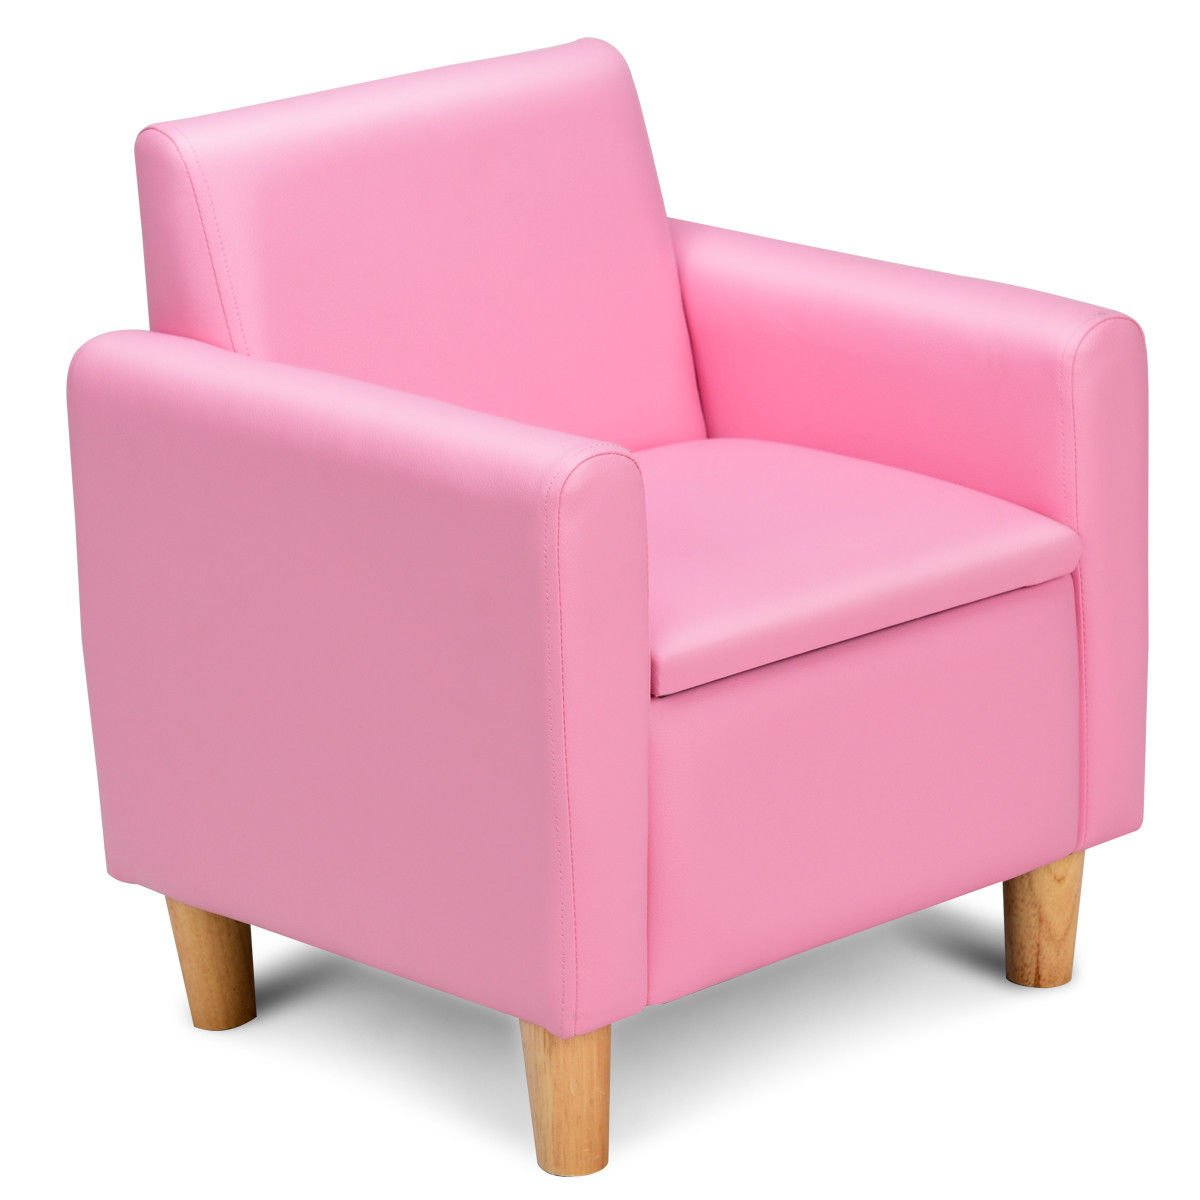 Pink Kids PVC Leather Single Armrest Chair Storage Box Sofa with Ebook